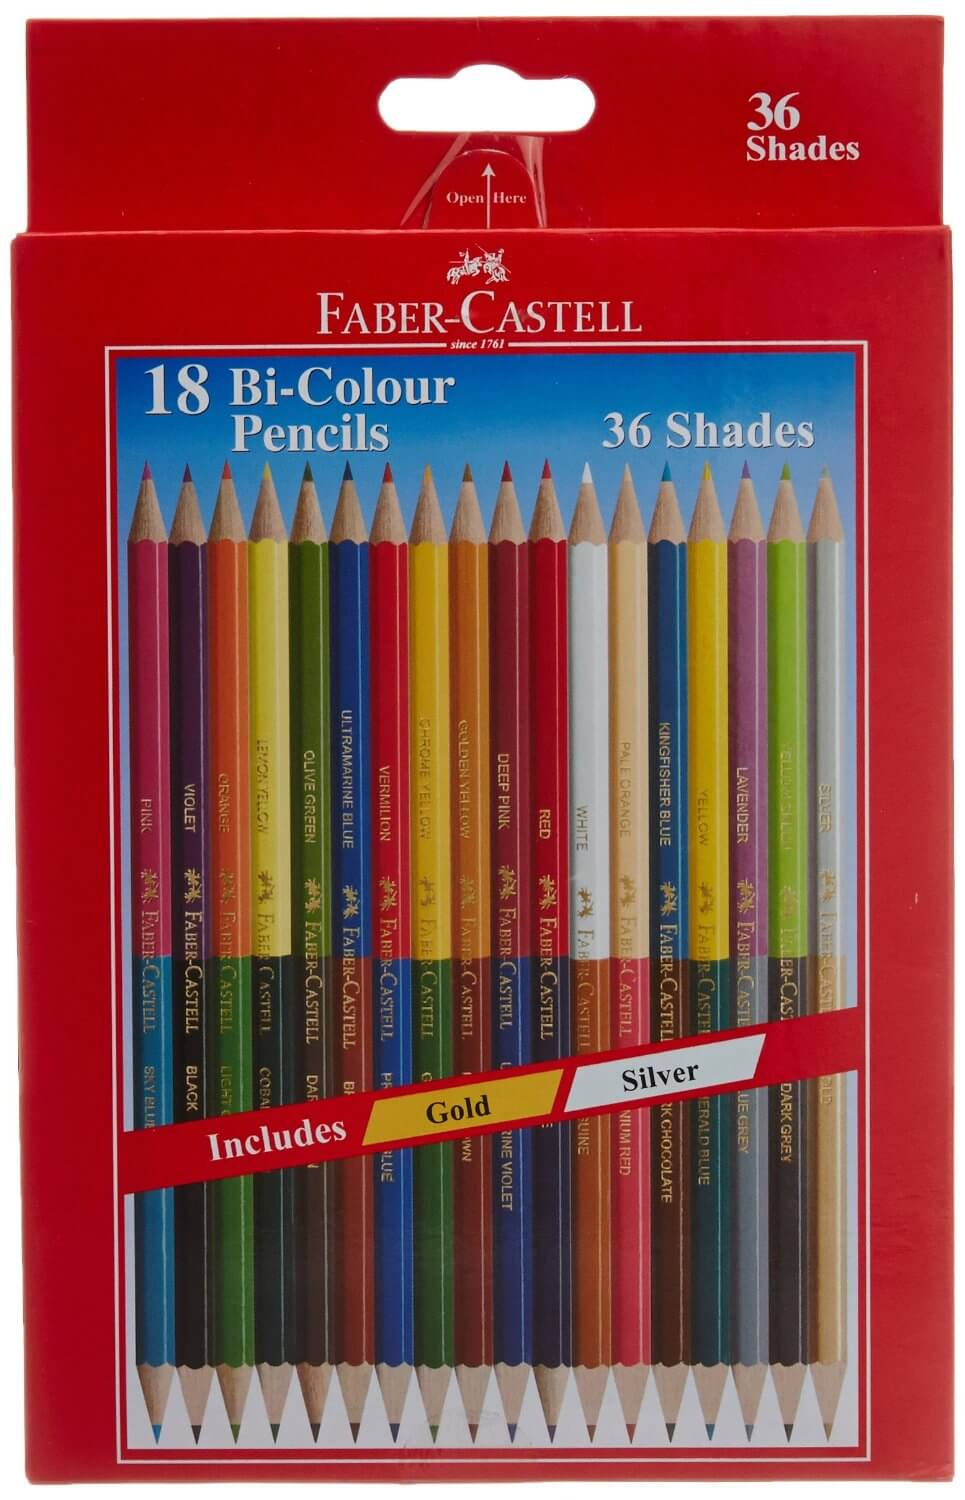 Faber Castell Bi-Color Pencils 36 Shades- Pack of 18 Pencils ...